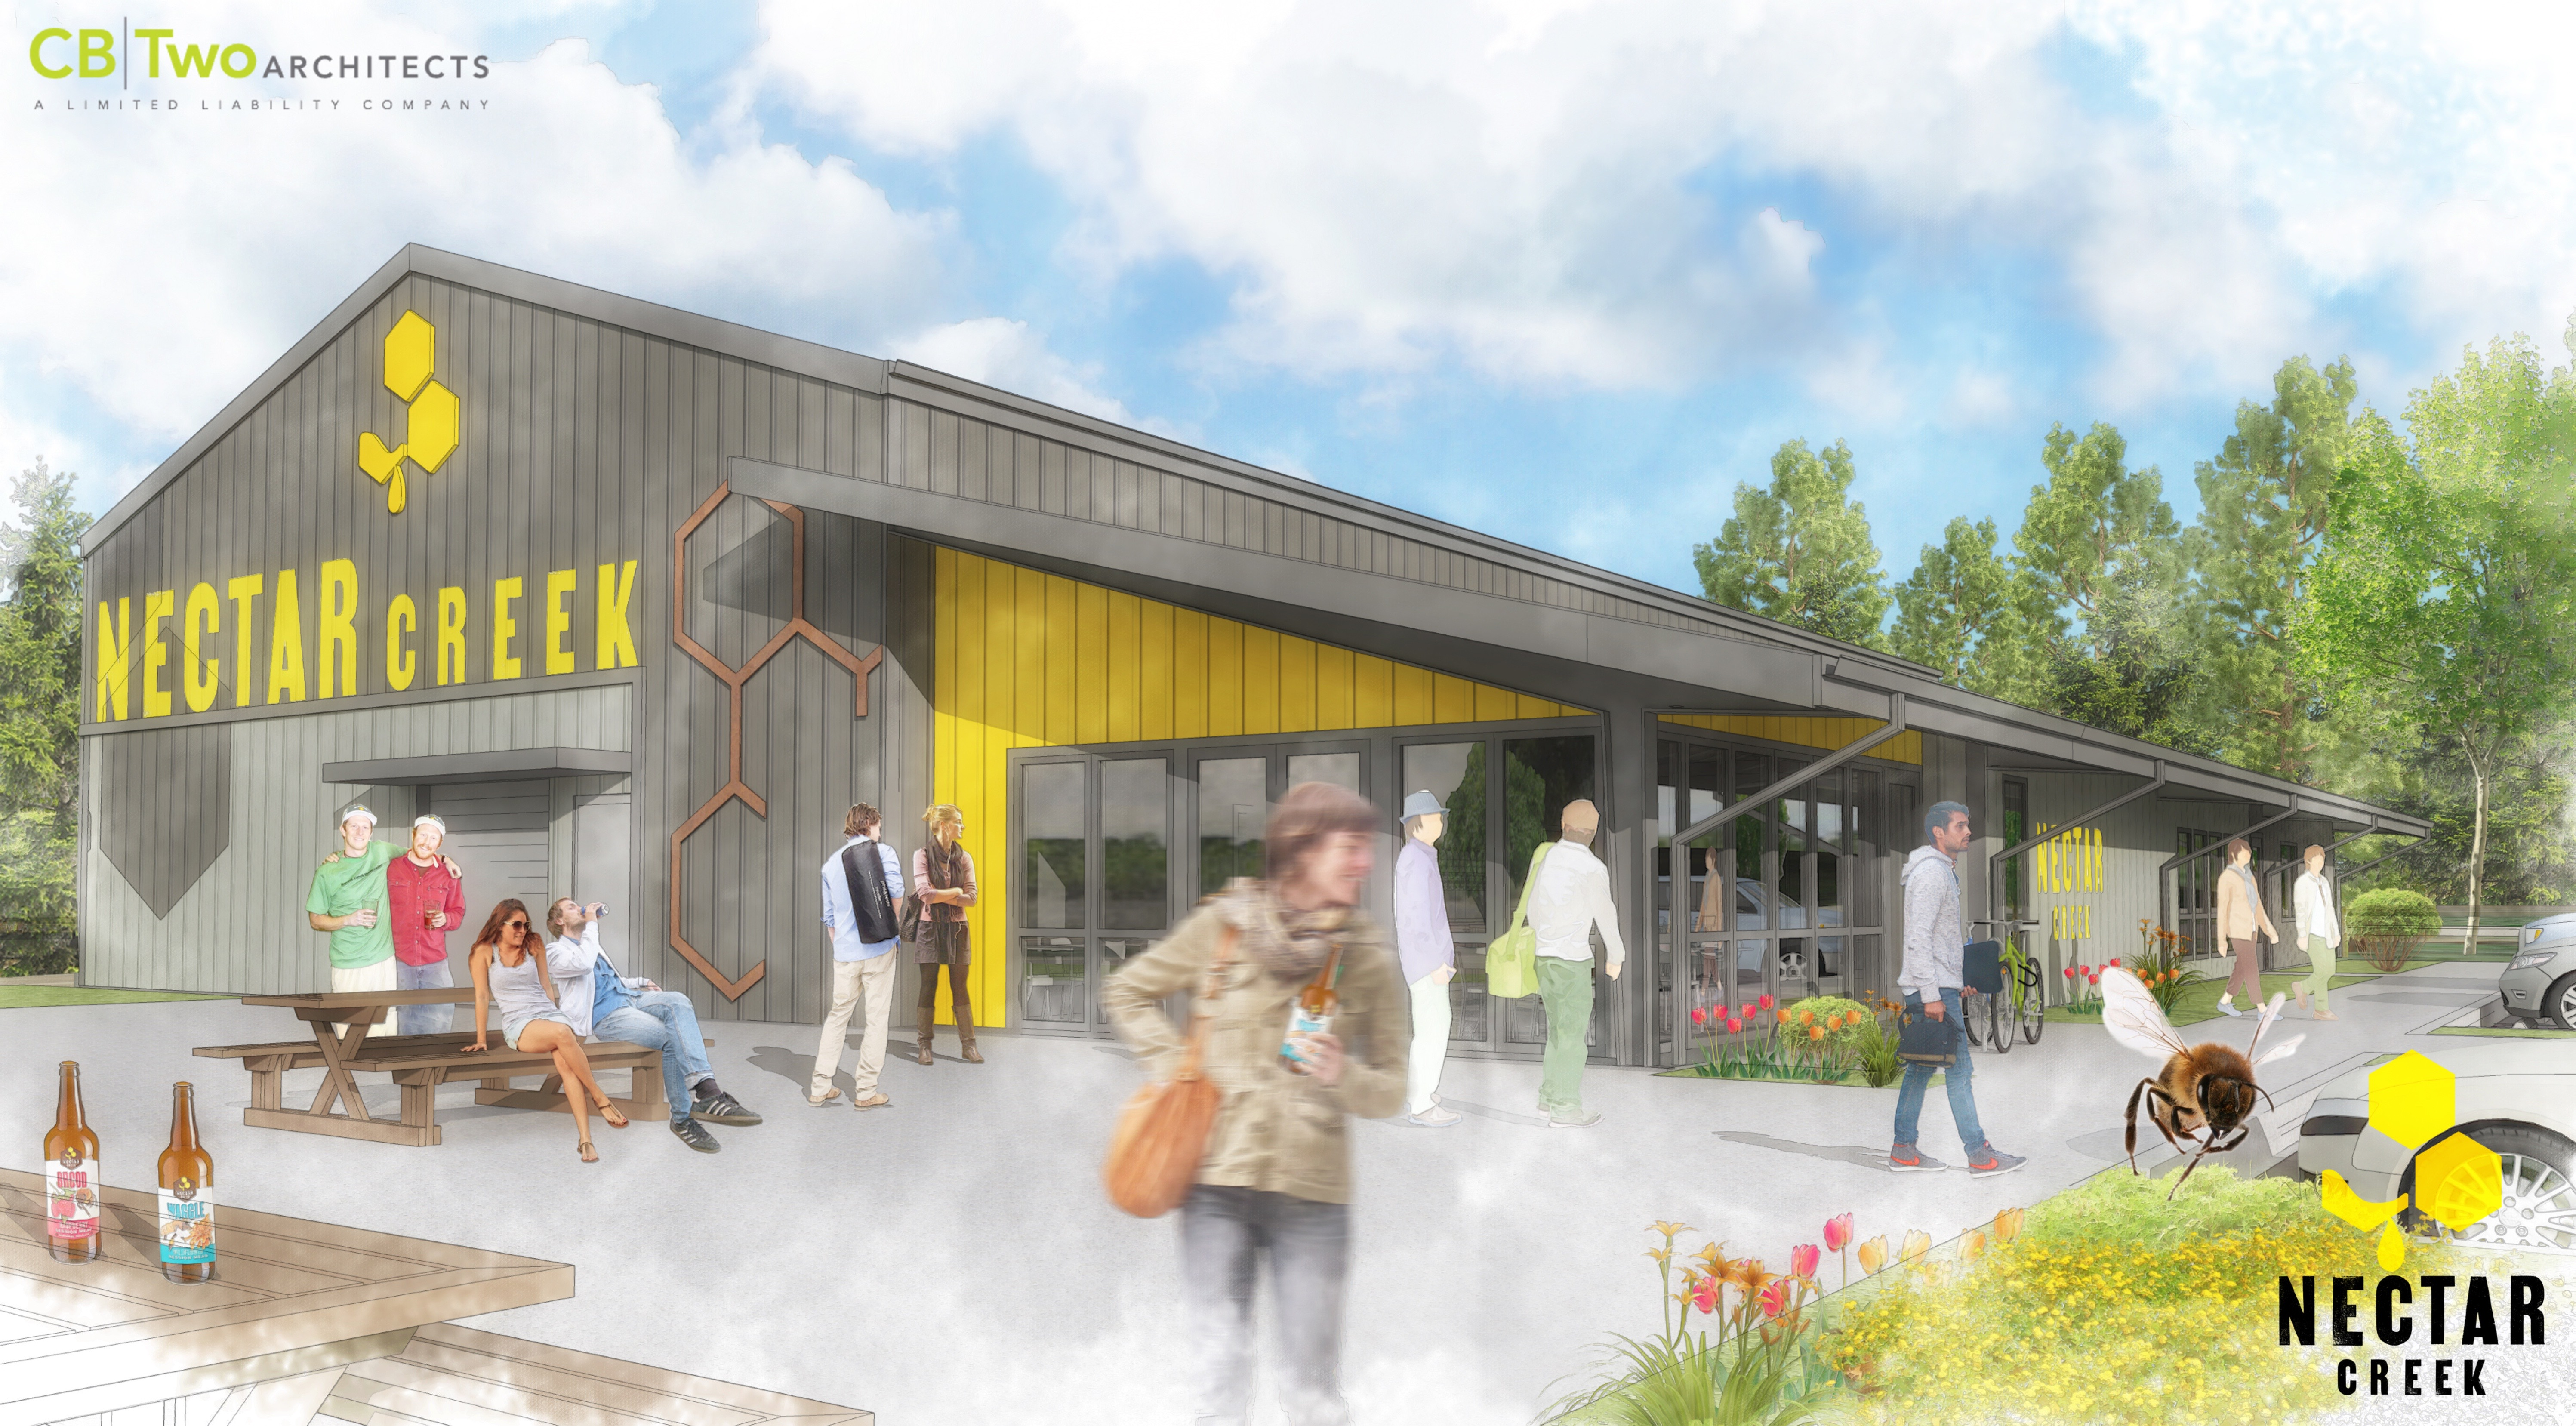 New Nectar Creek Building to be built in Philomath, Oregon. (image courtesy of CB Two Architects)